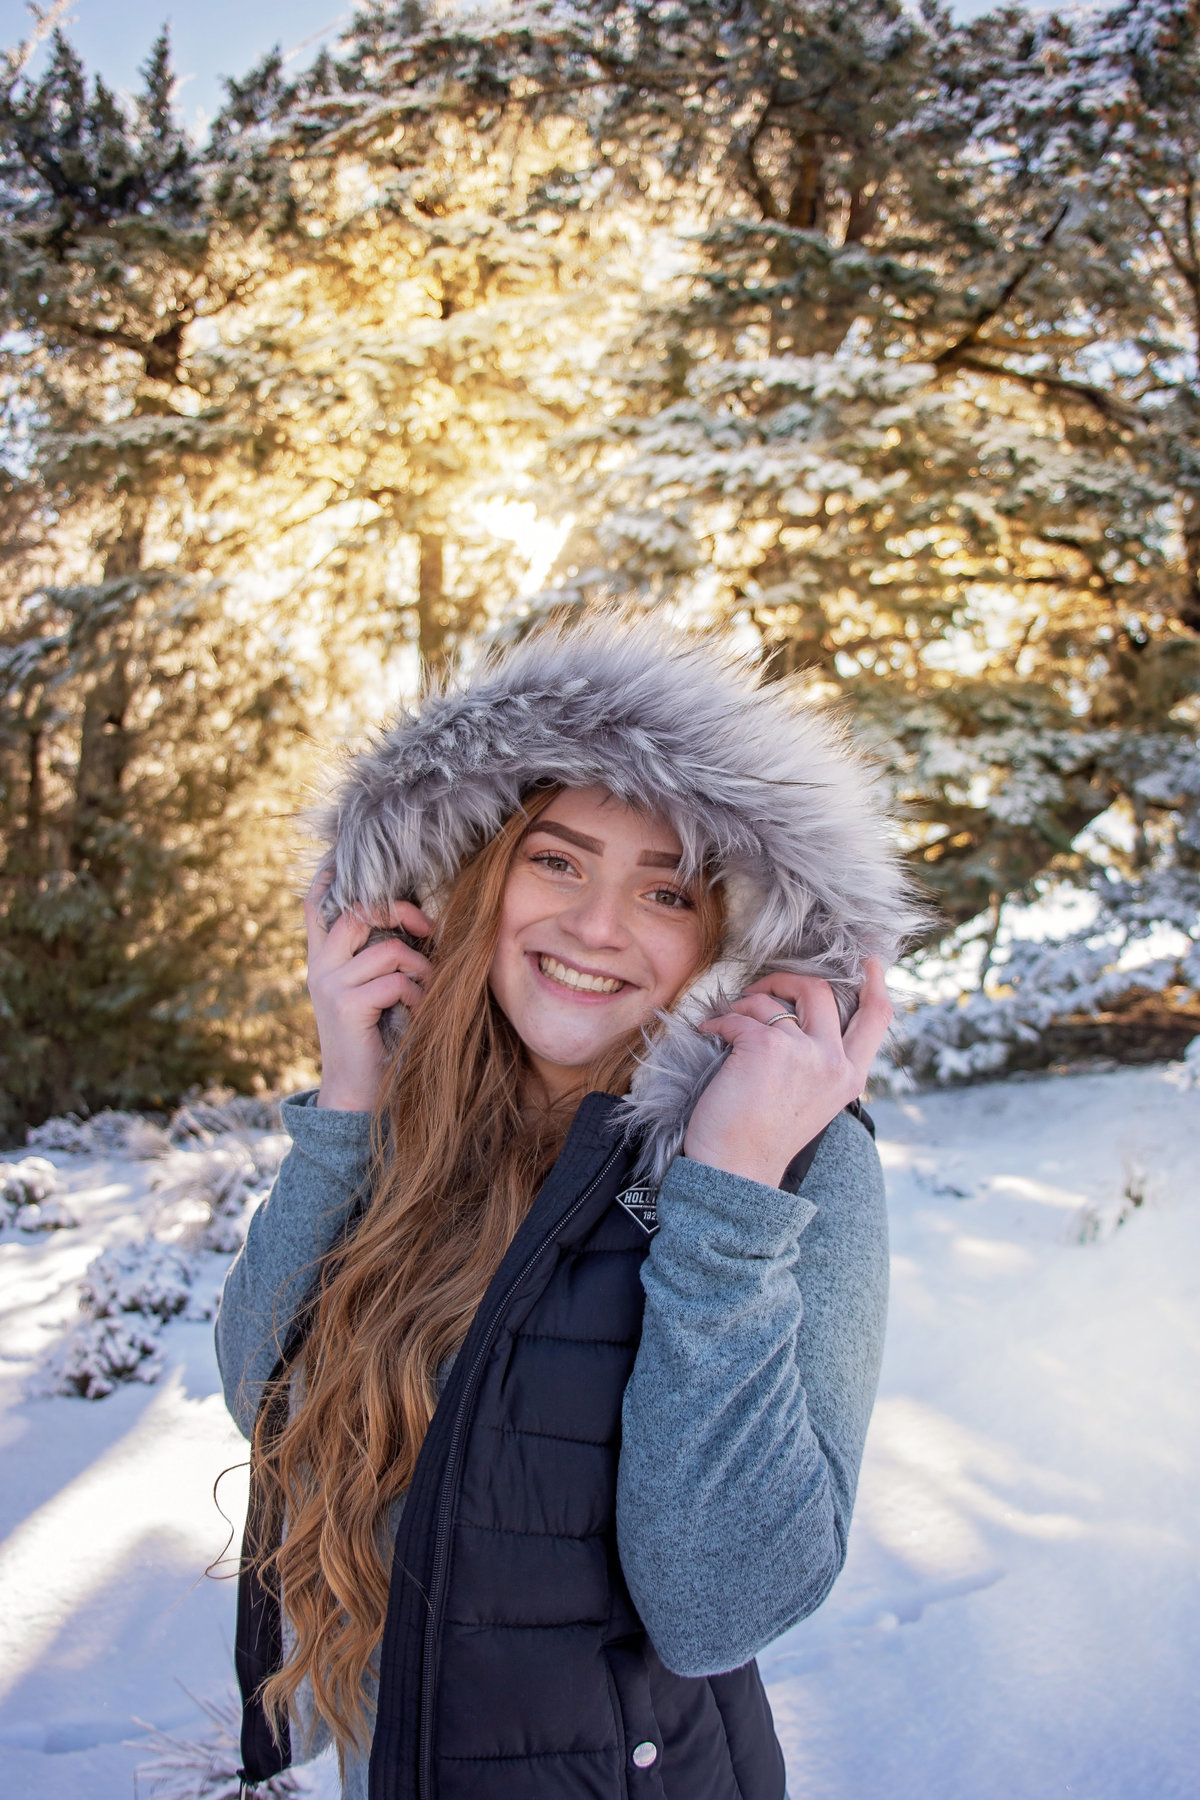 Redway-California-senior-portrait-photographer-Parky's-Pics-Photography-Humboldt-County-Snow-session-Mountain-top-Monument-Mountain-Rio-Dell-CA-10.jpg